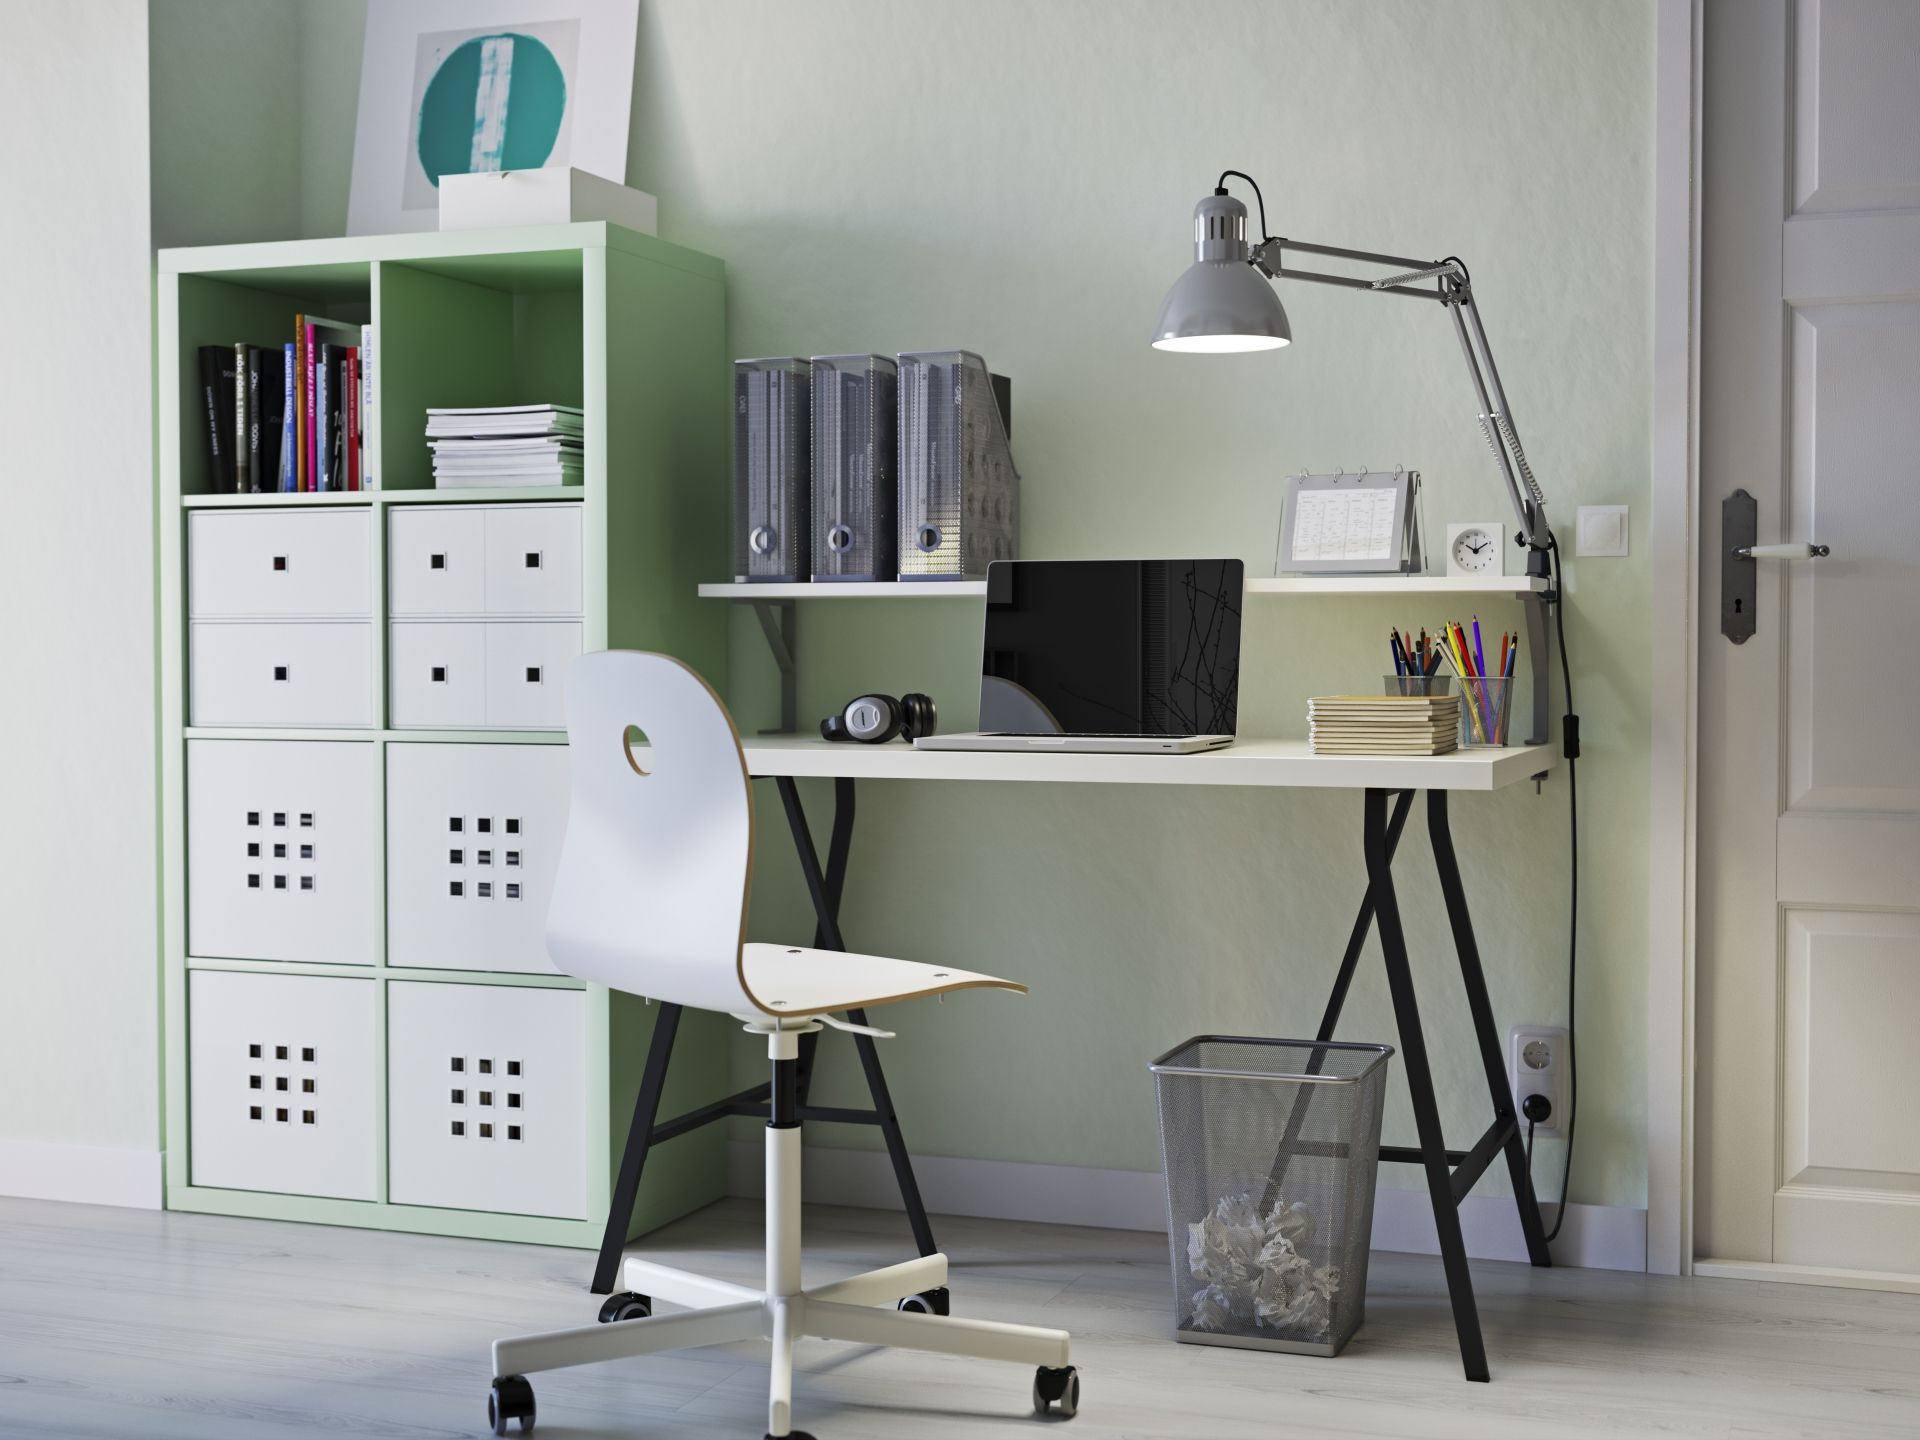 Ikea hack bureau met betonnen werkblad for the home ikea